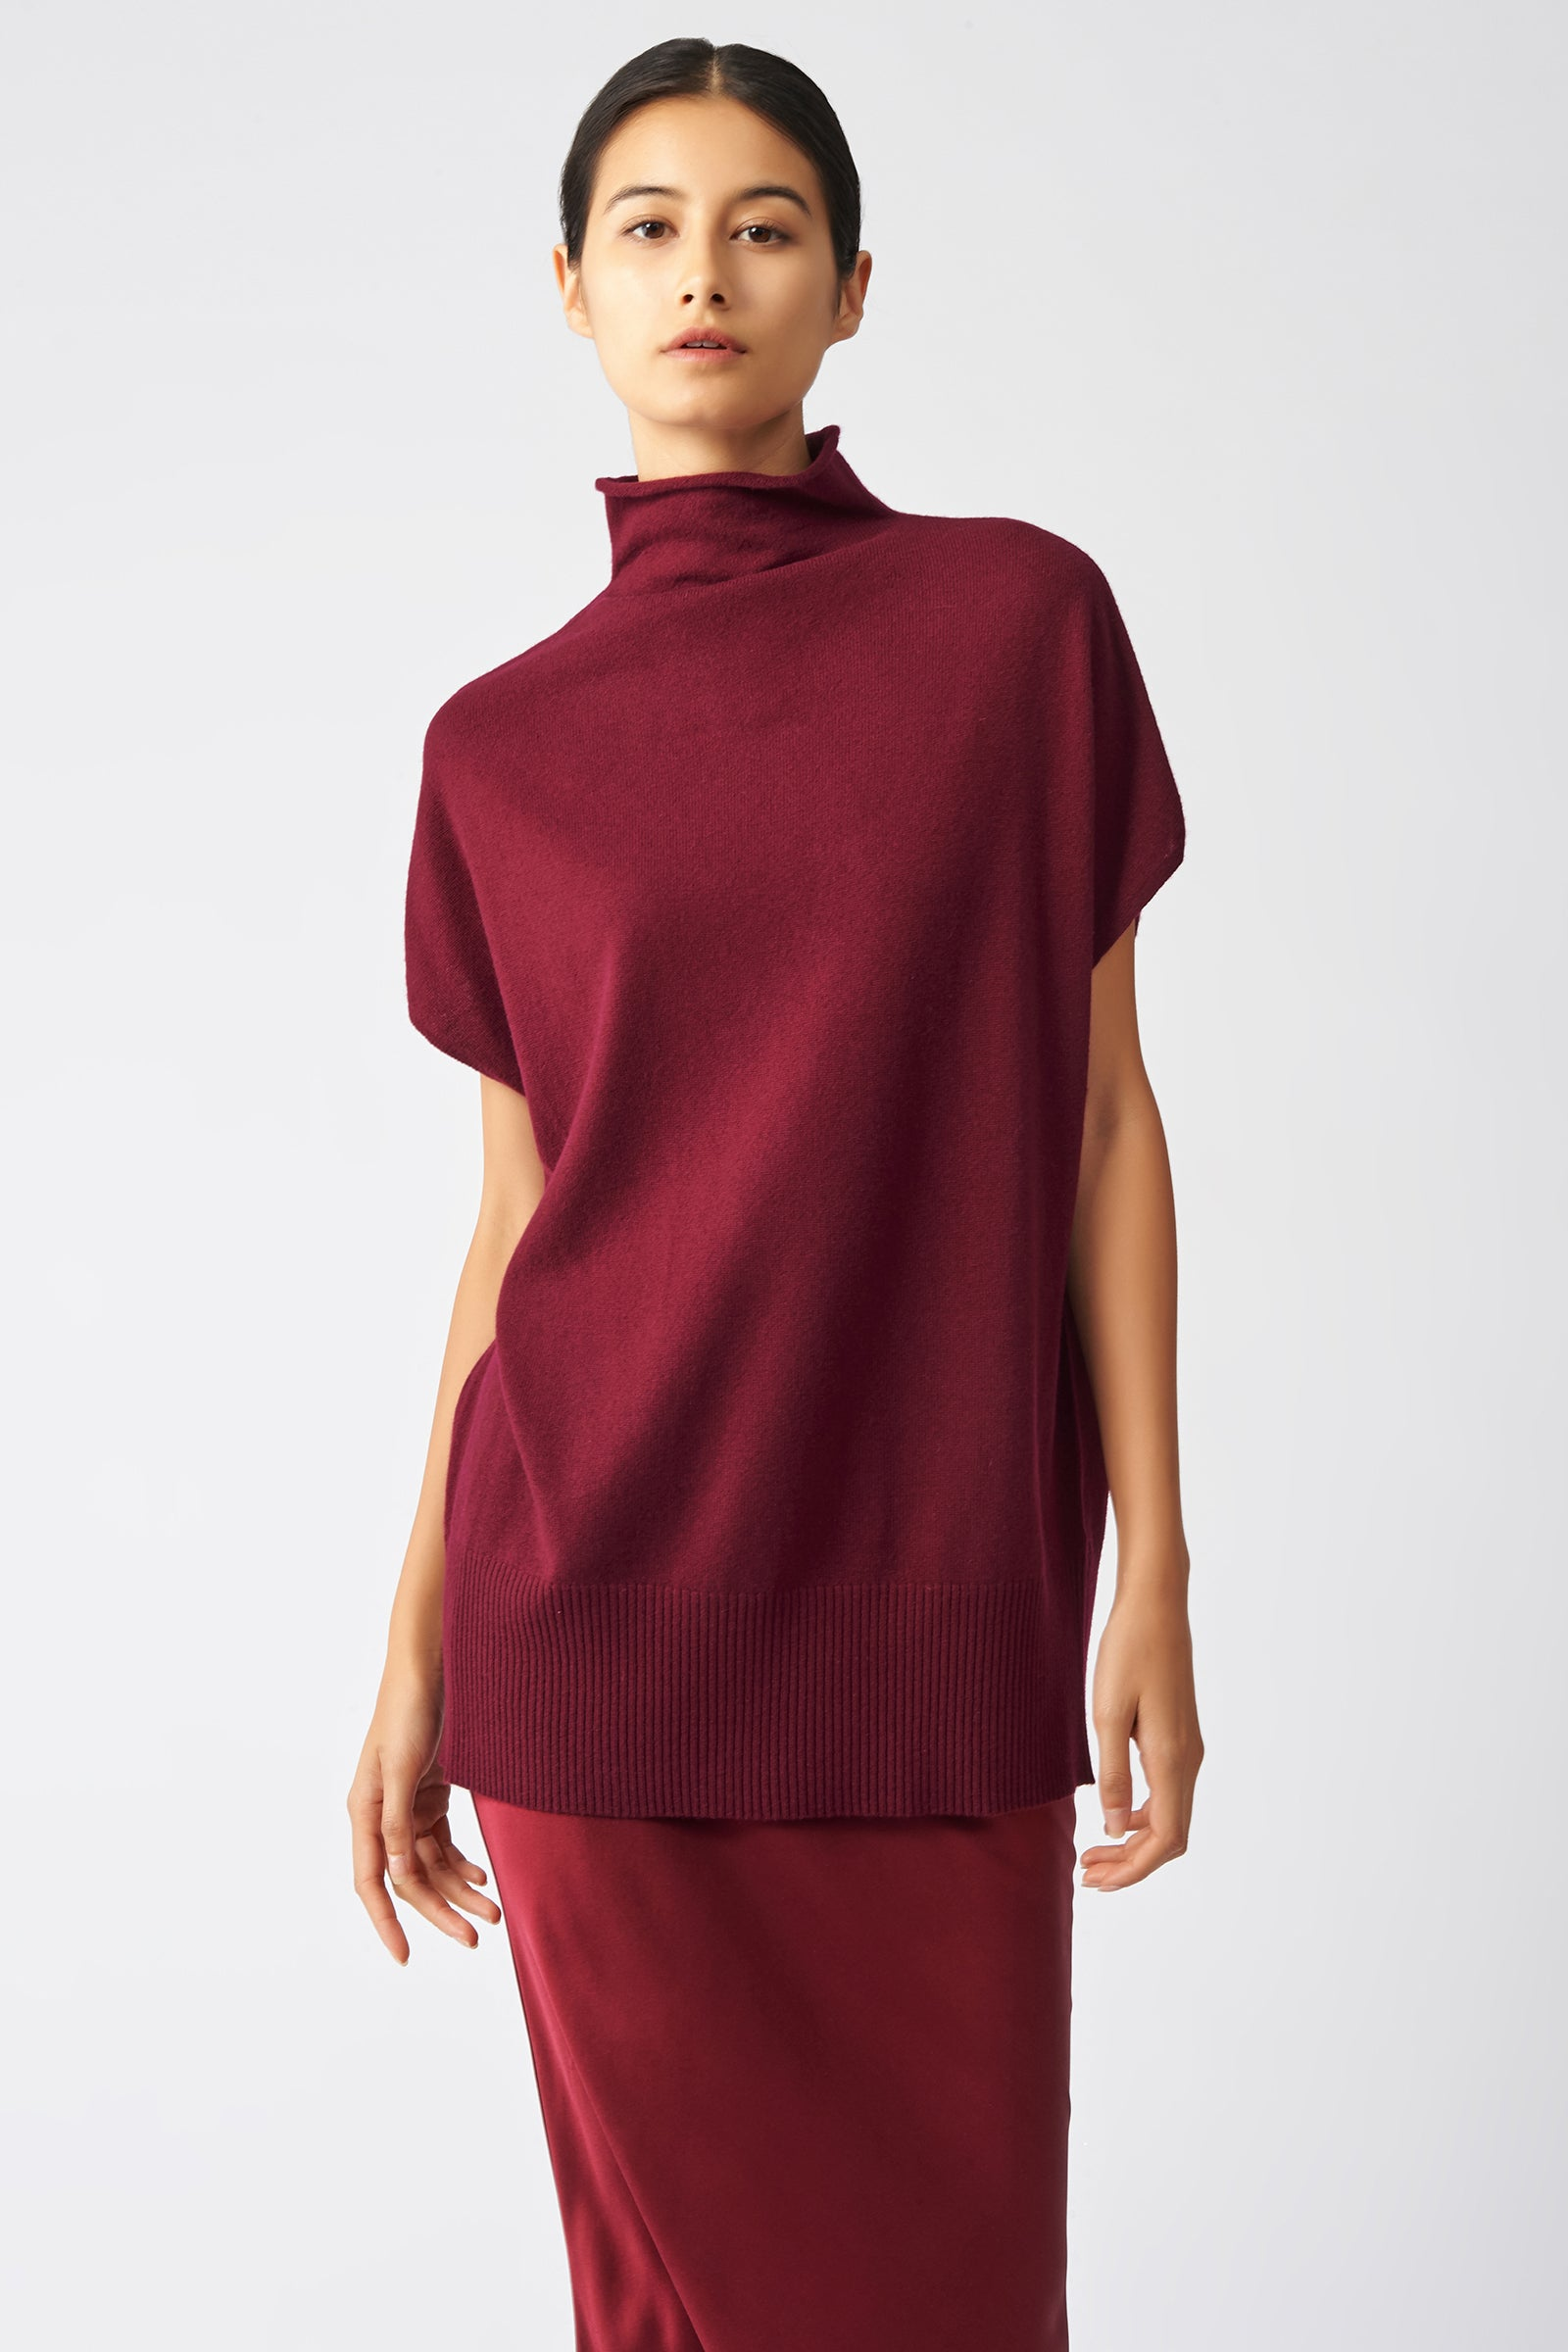 Kal Rieman Cashmere Funnelneck in Bordeaux on Model Front View